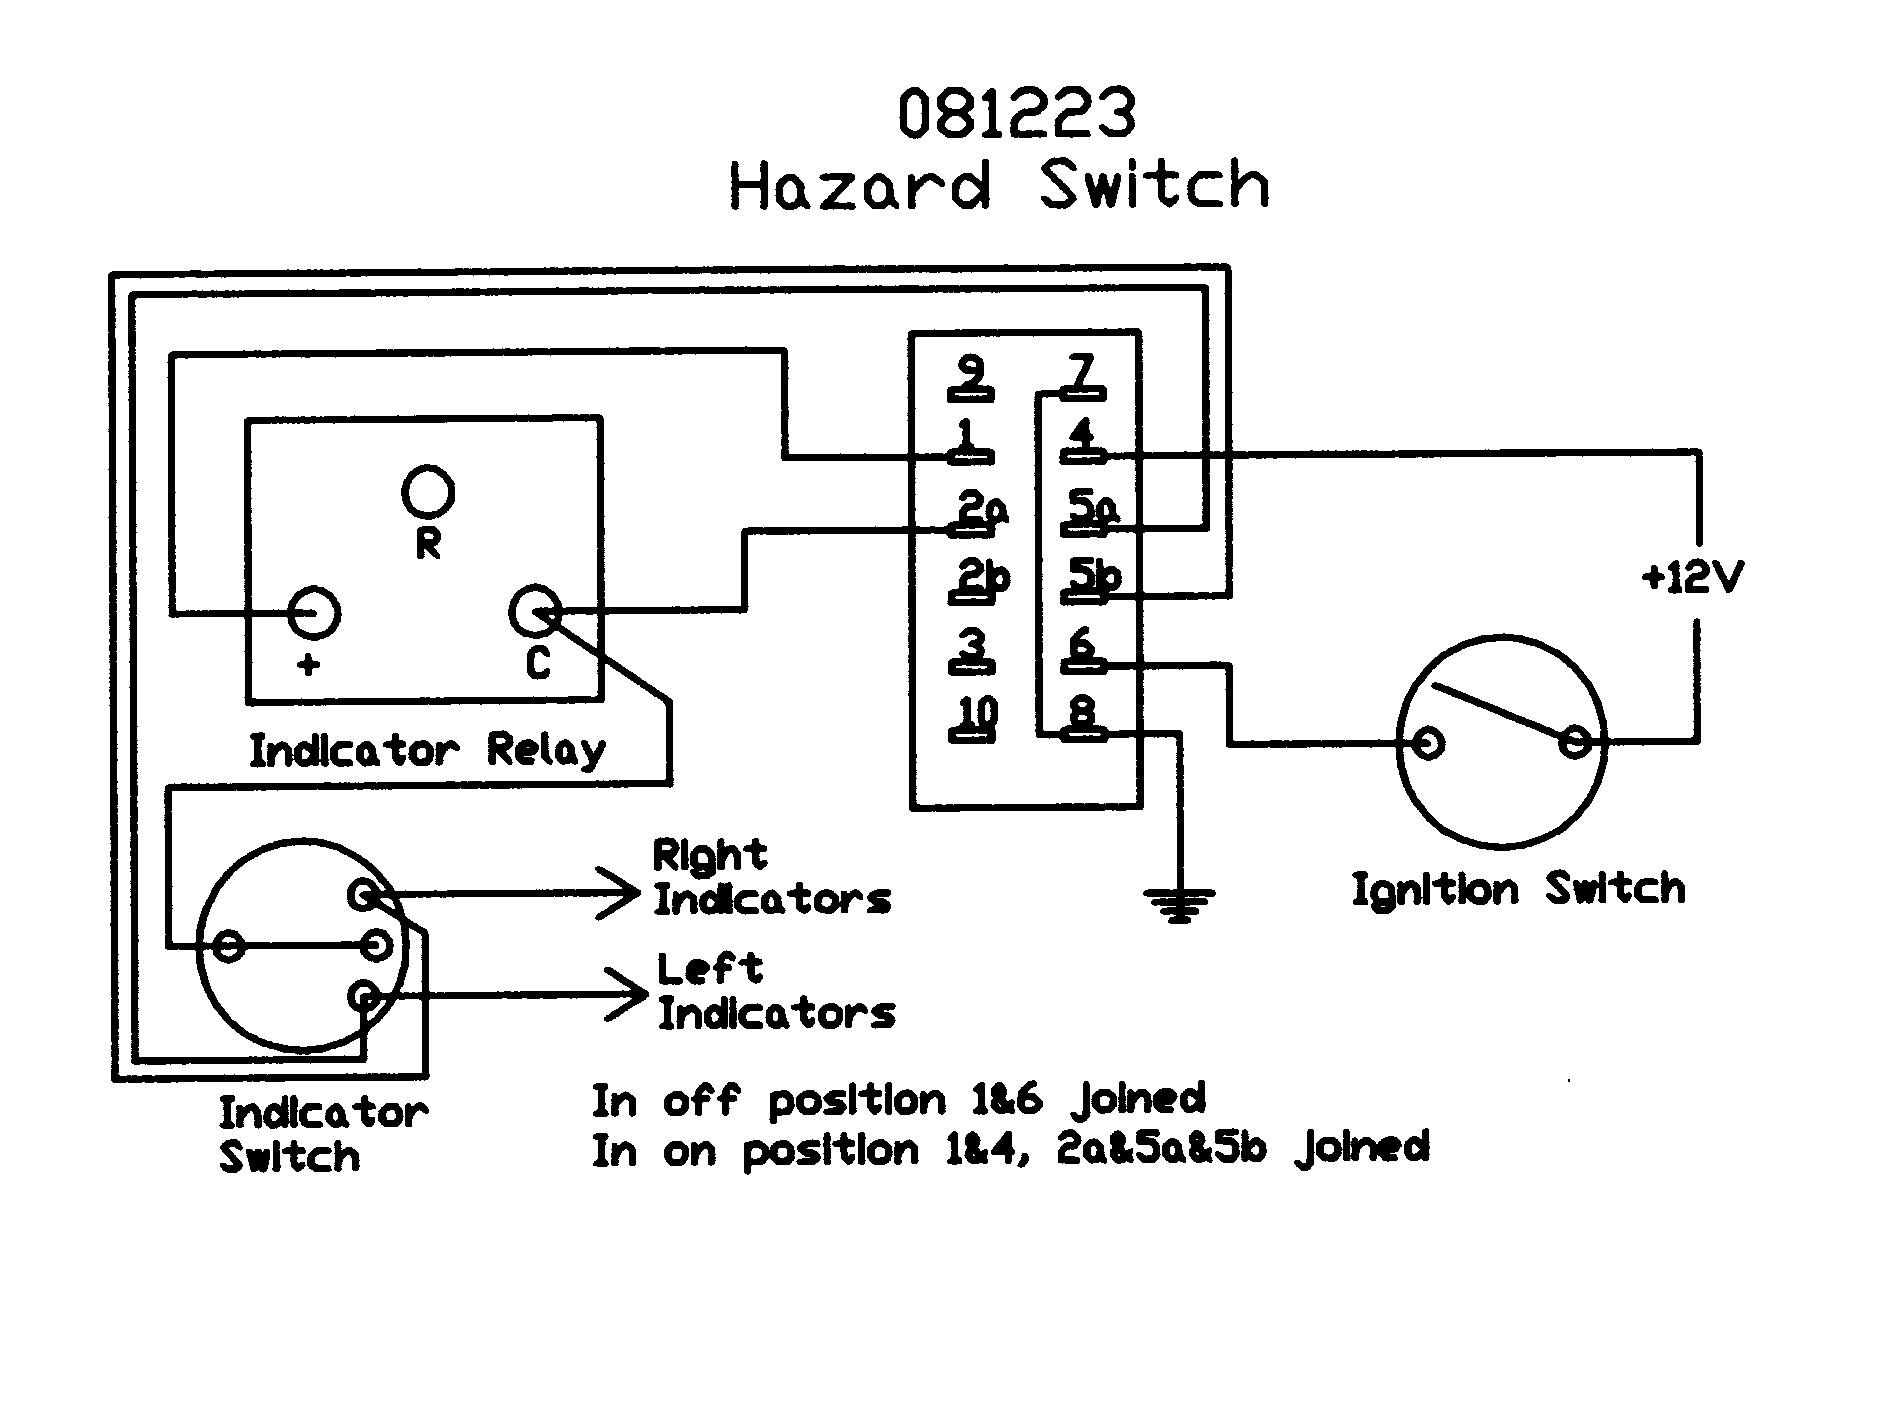 Light Switch Drawing At Free For Personal Use House Electrical Wiring Diagrams Further Australia 1904x1424 Rocker Hazard